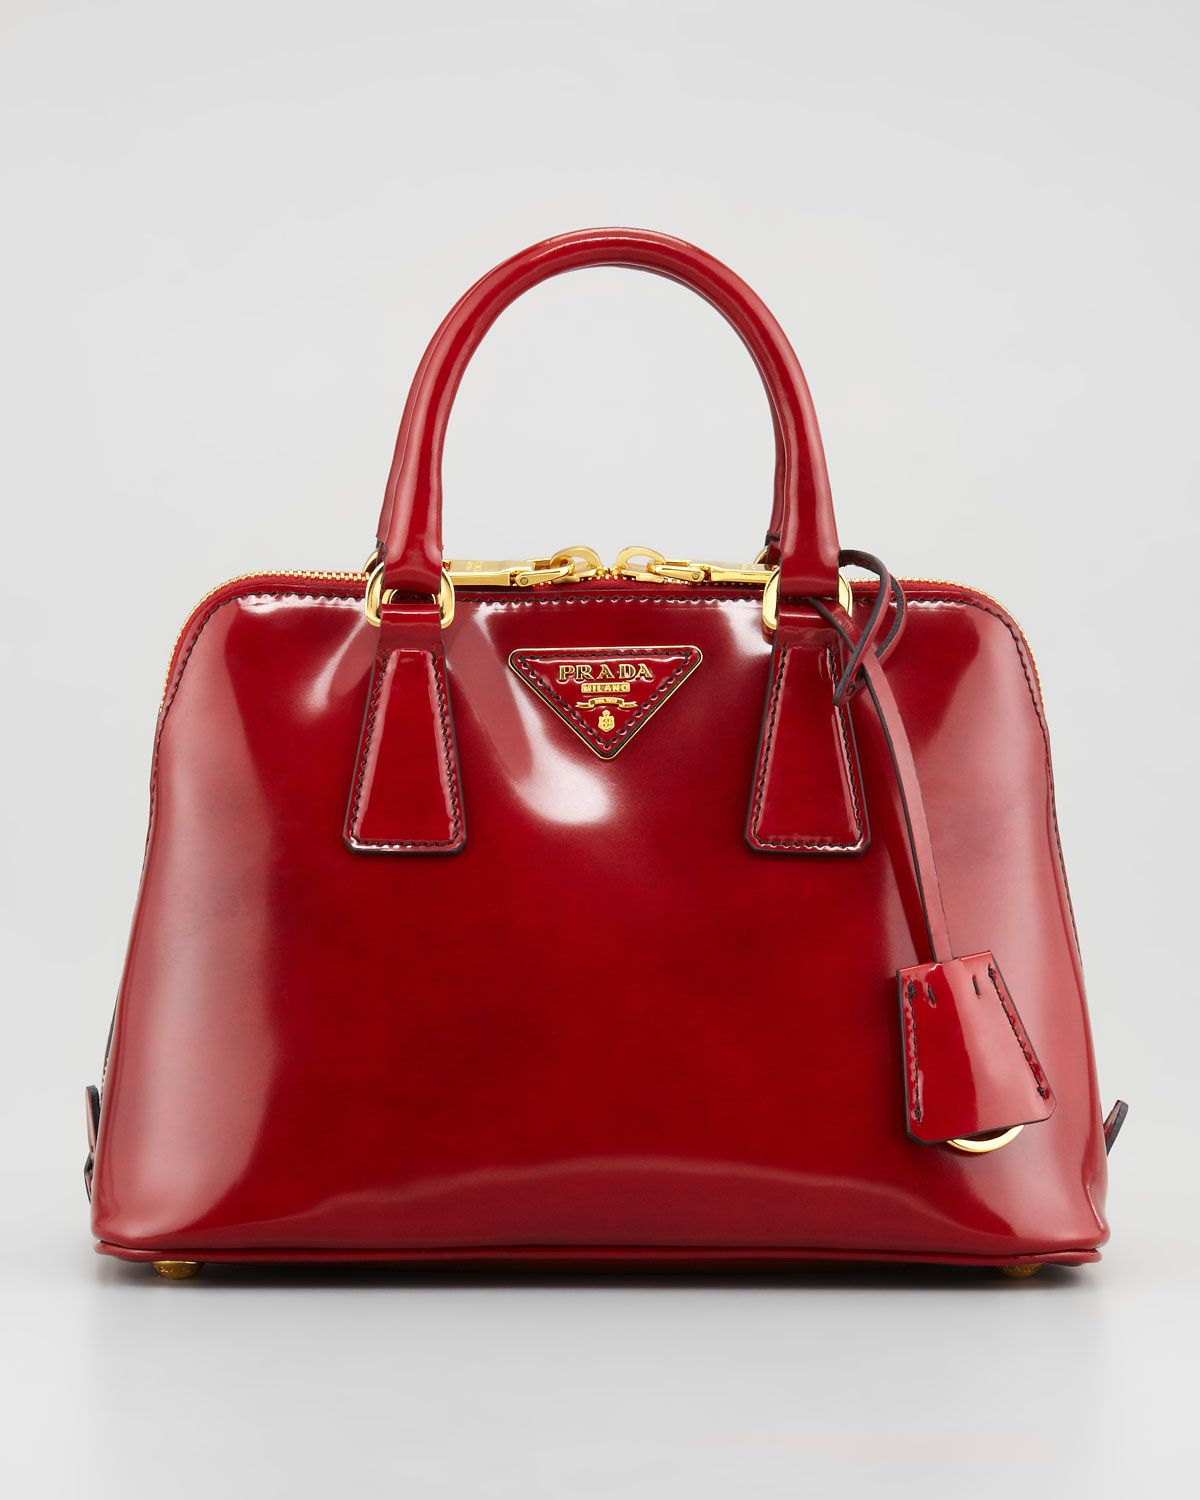 Prada - Spazzolato Promenade Satchel Bag, Red - http://womenspin ...